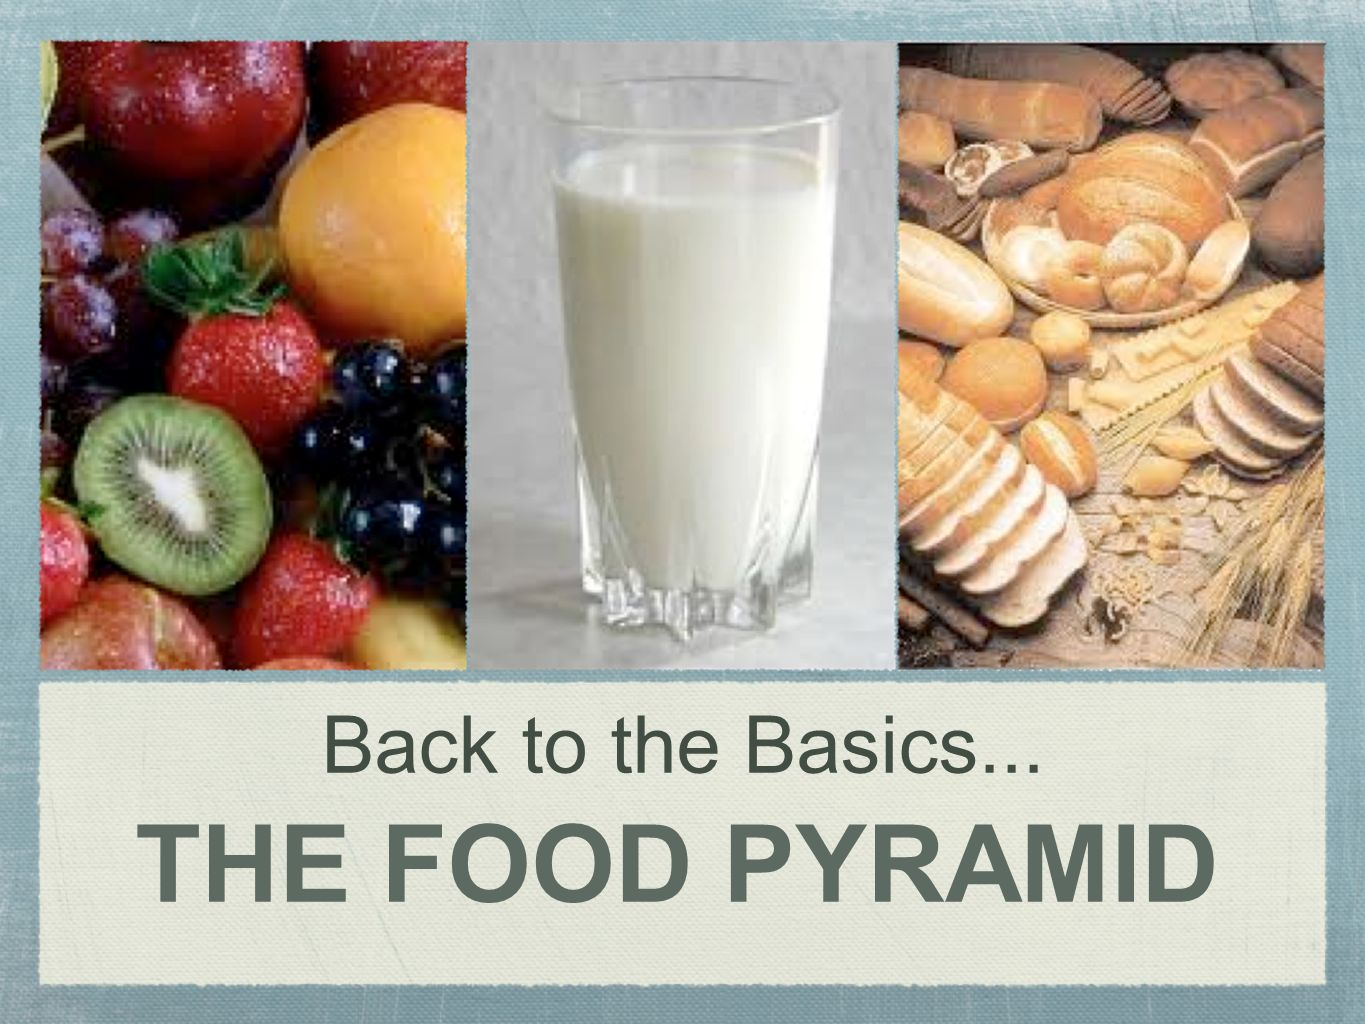 Back to the Basics... THE FOOD PYRAMID